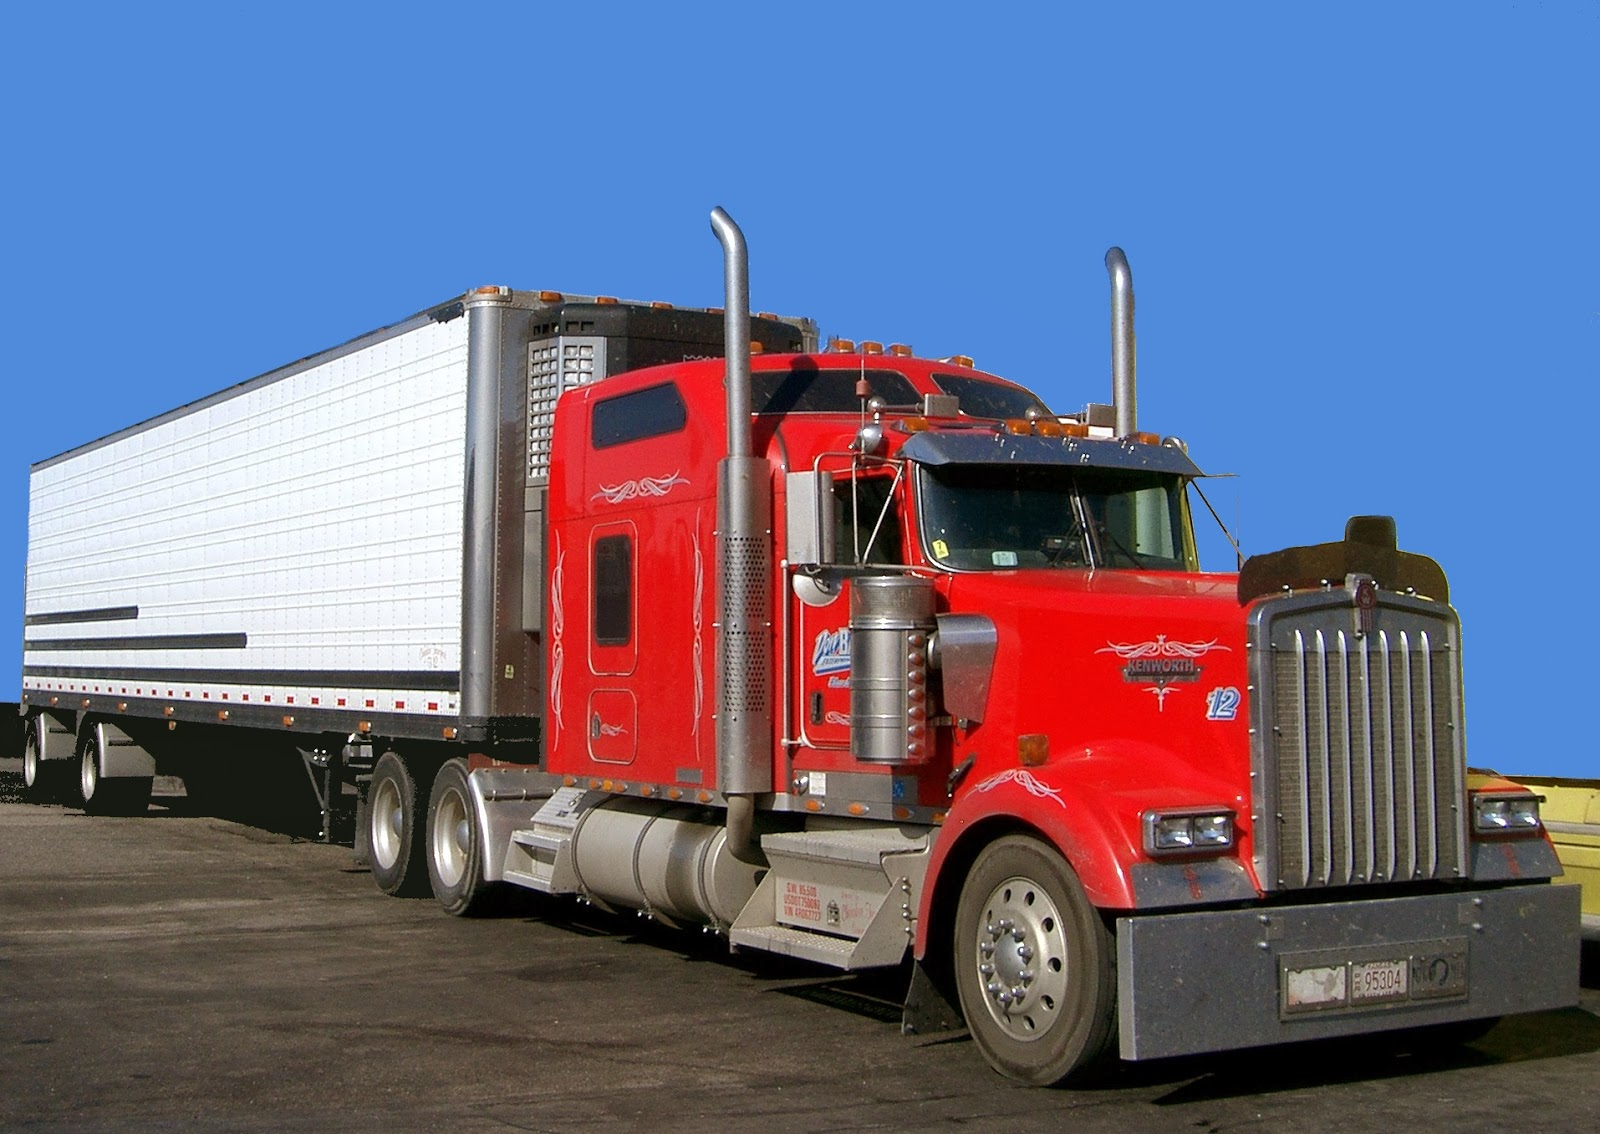 The heavy duty trucks are much powerful and bigger in size than any other kinds of trucks there are many renowned auto mobile brands that has made